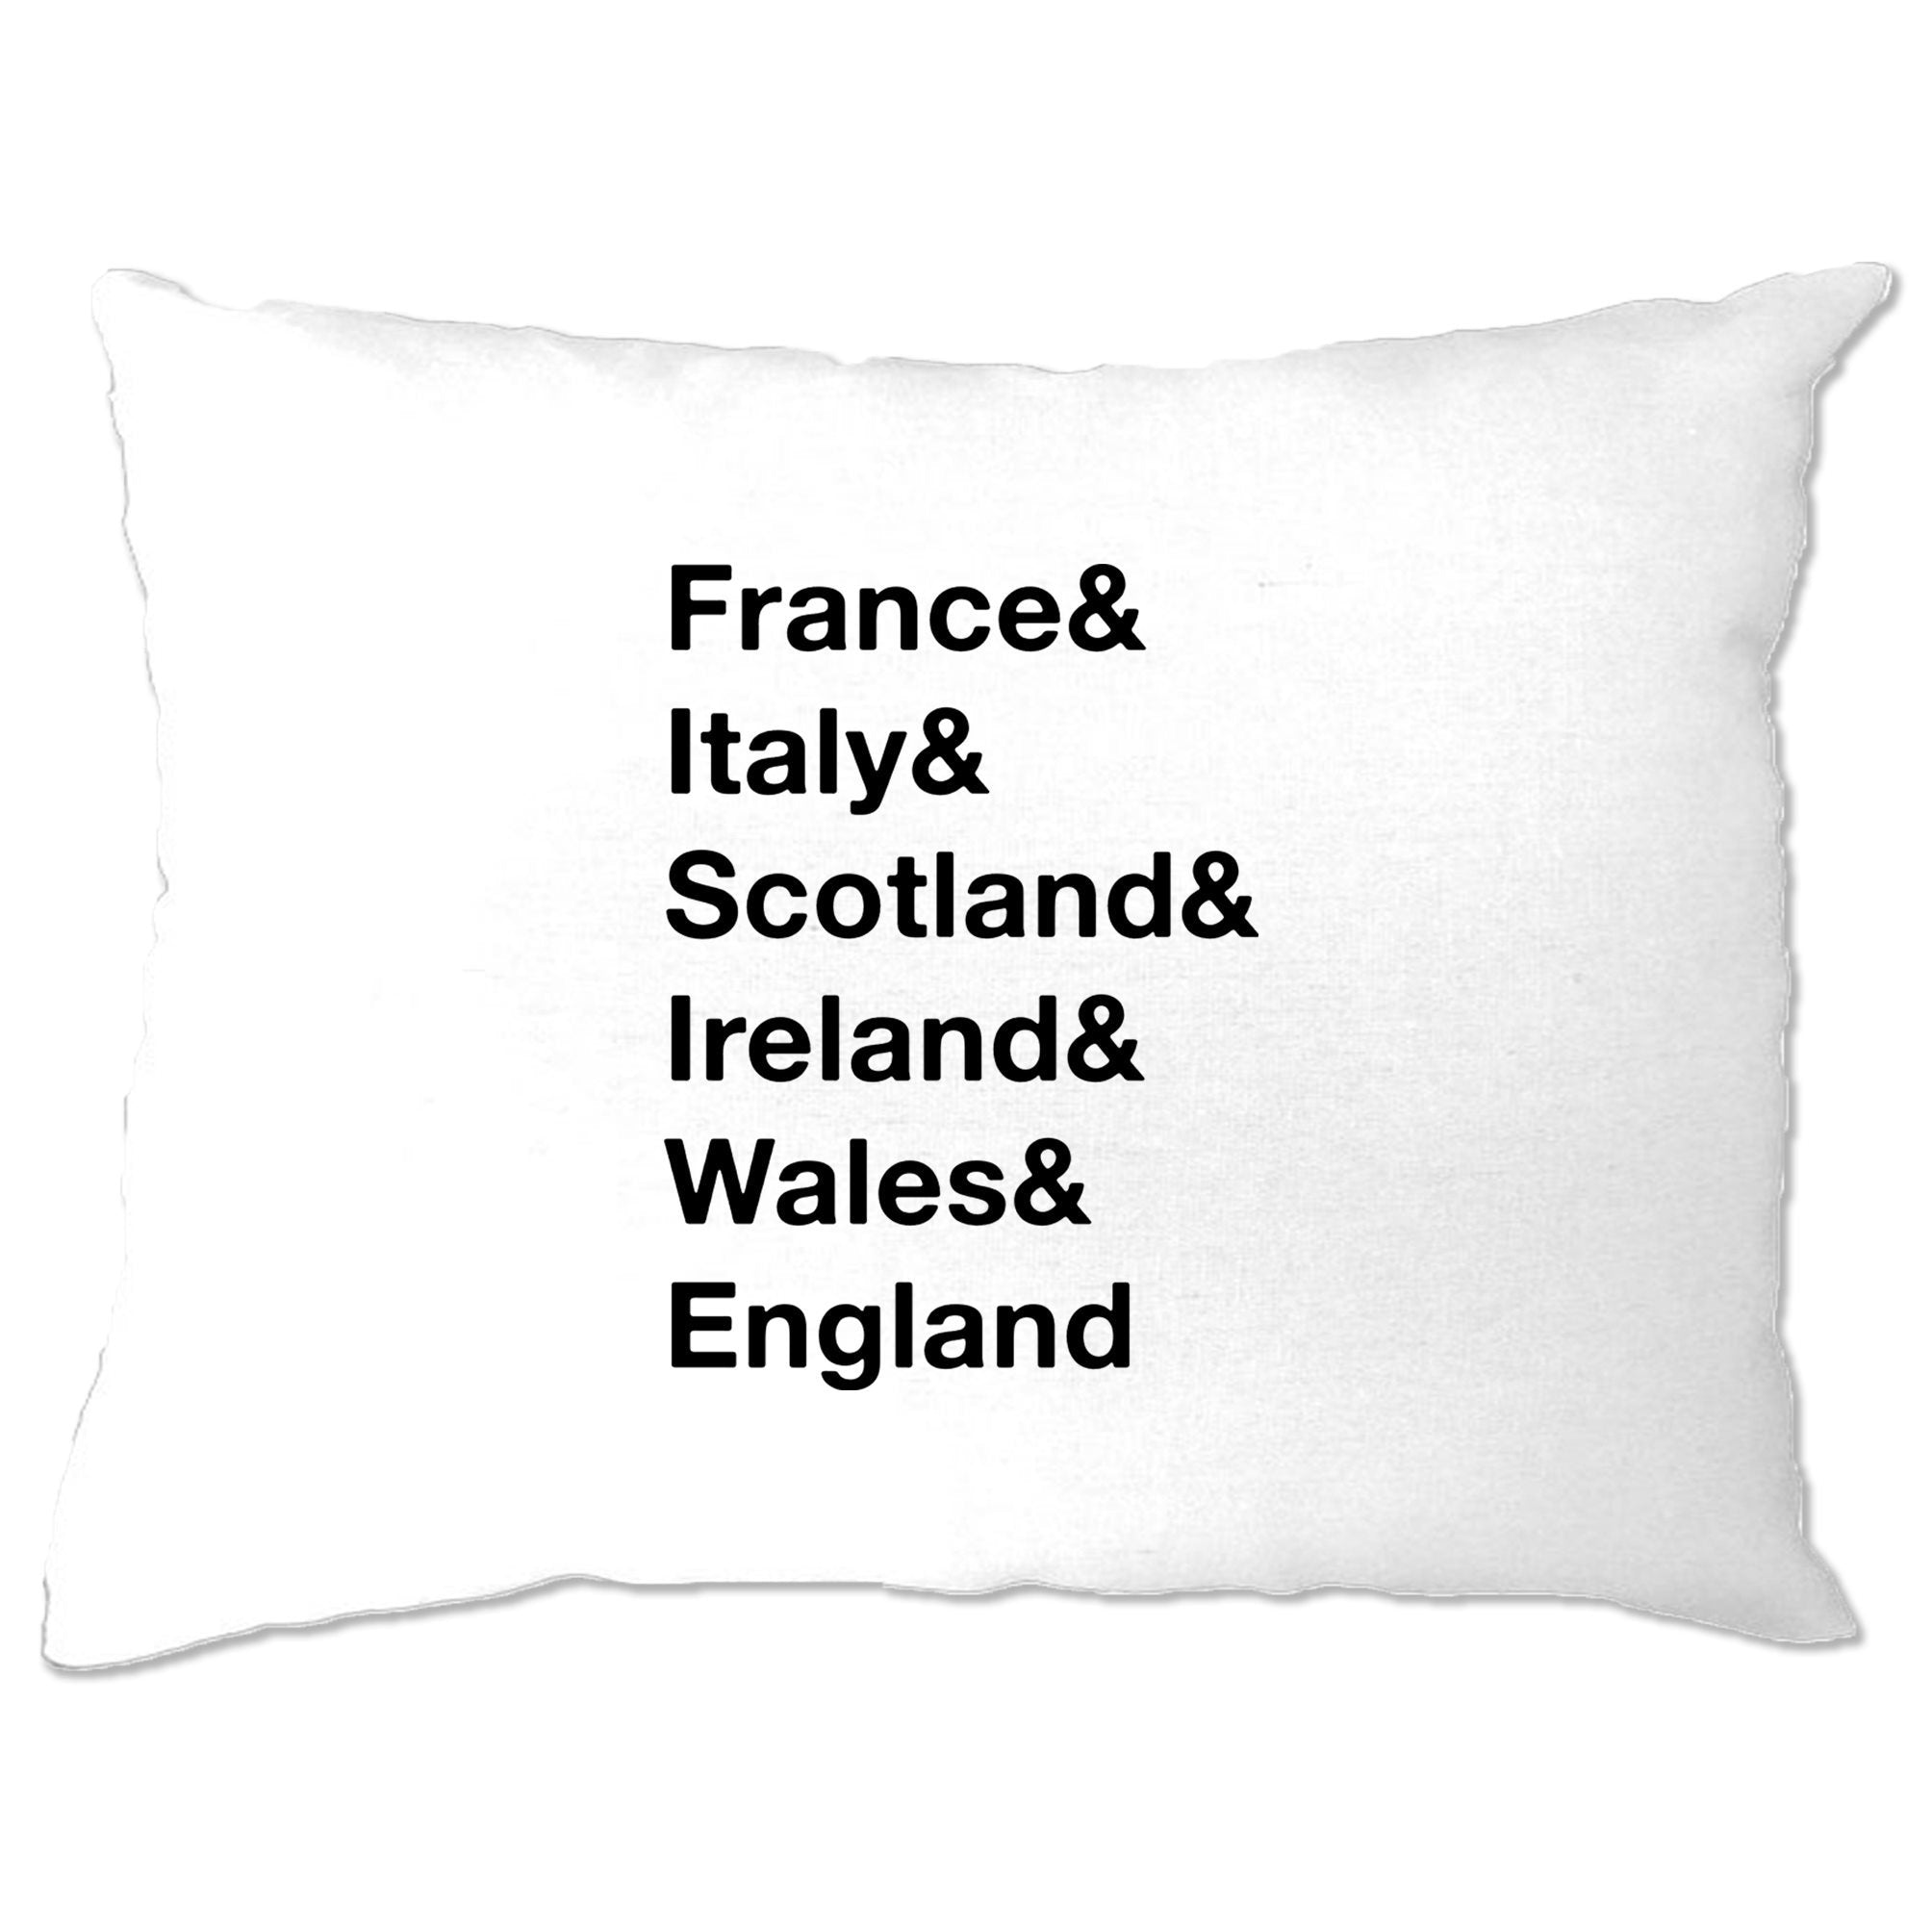 The Six Nations Pillow Case France, Italy, Scotland